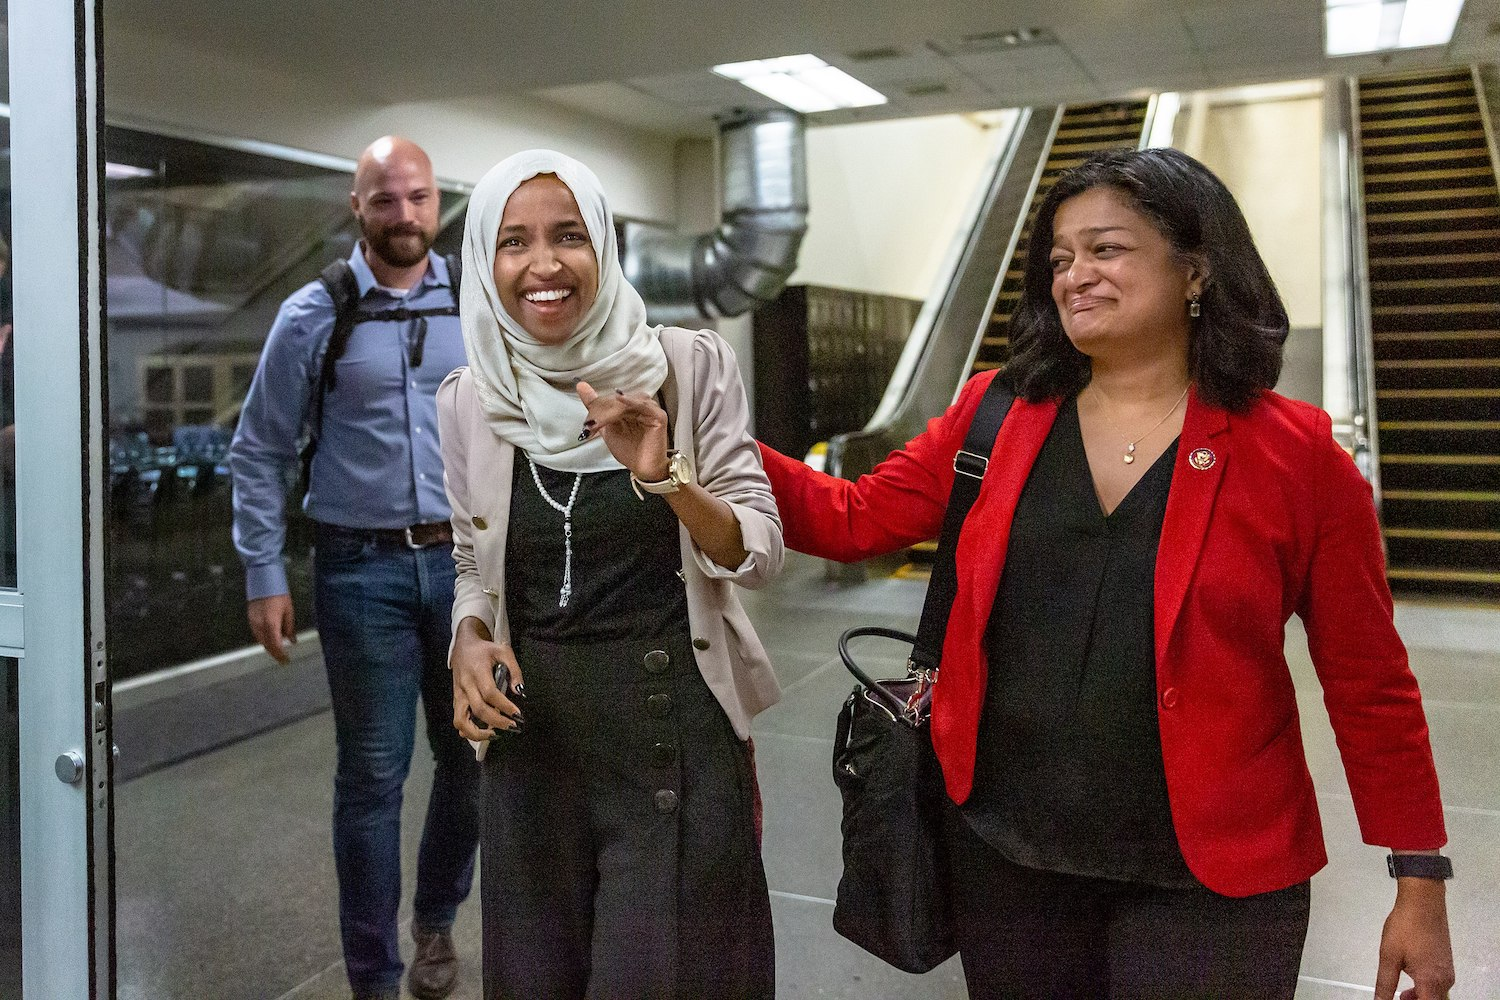 Minnesota Rep. Ilhan Omar (left) greets supporters as she lands at Minneapolis−Saint Paul International Airport, July 18. (Lorie Shaull/CC BY-SA 2.0)